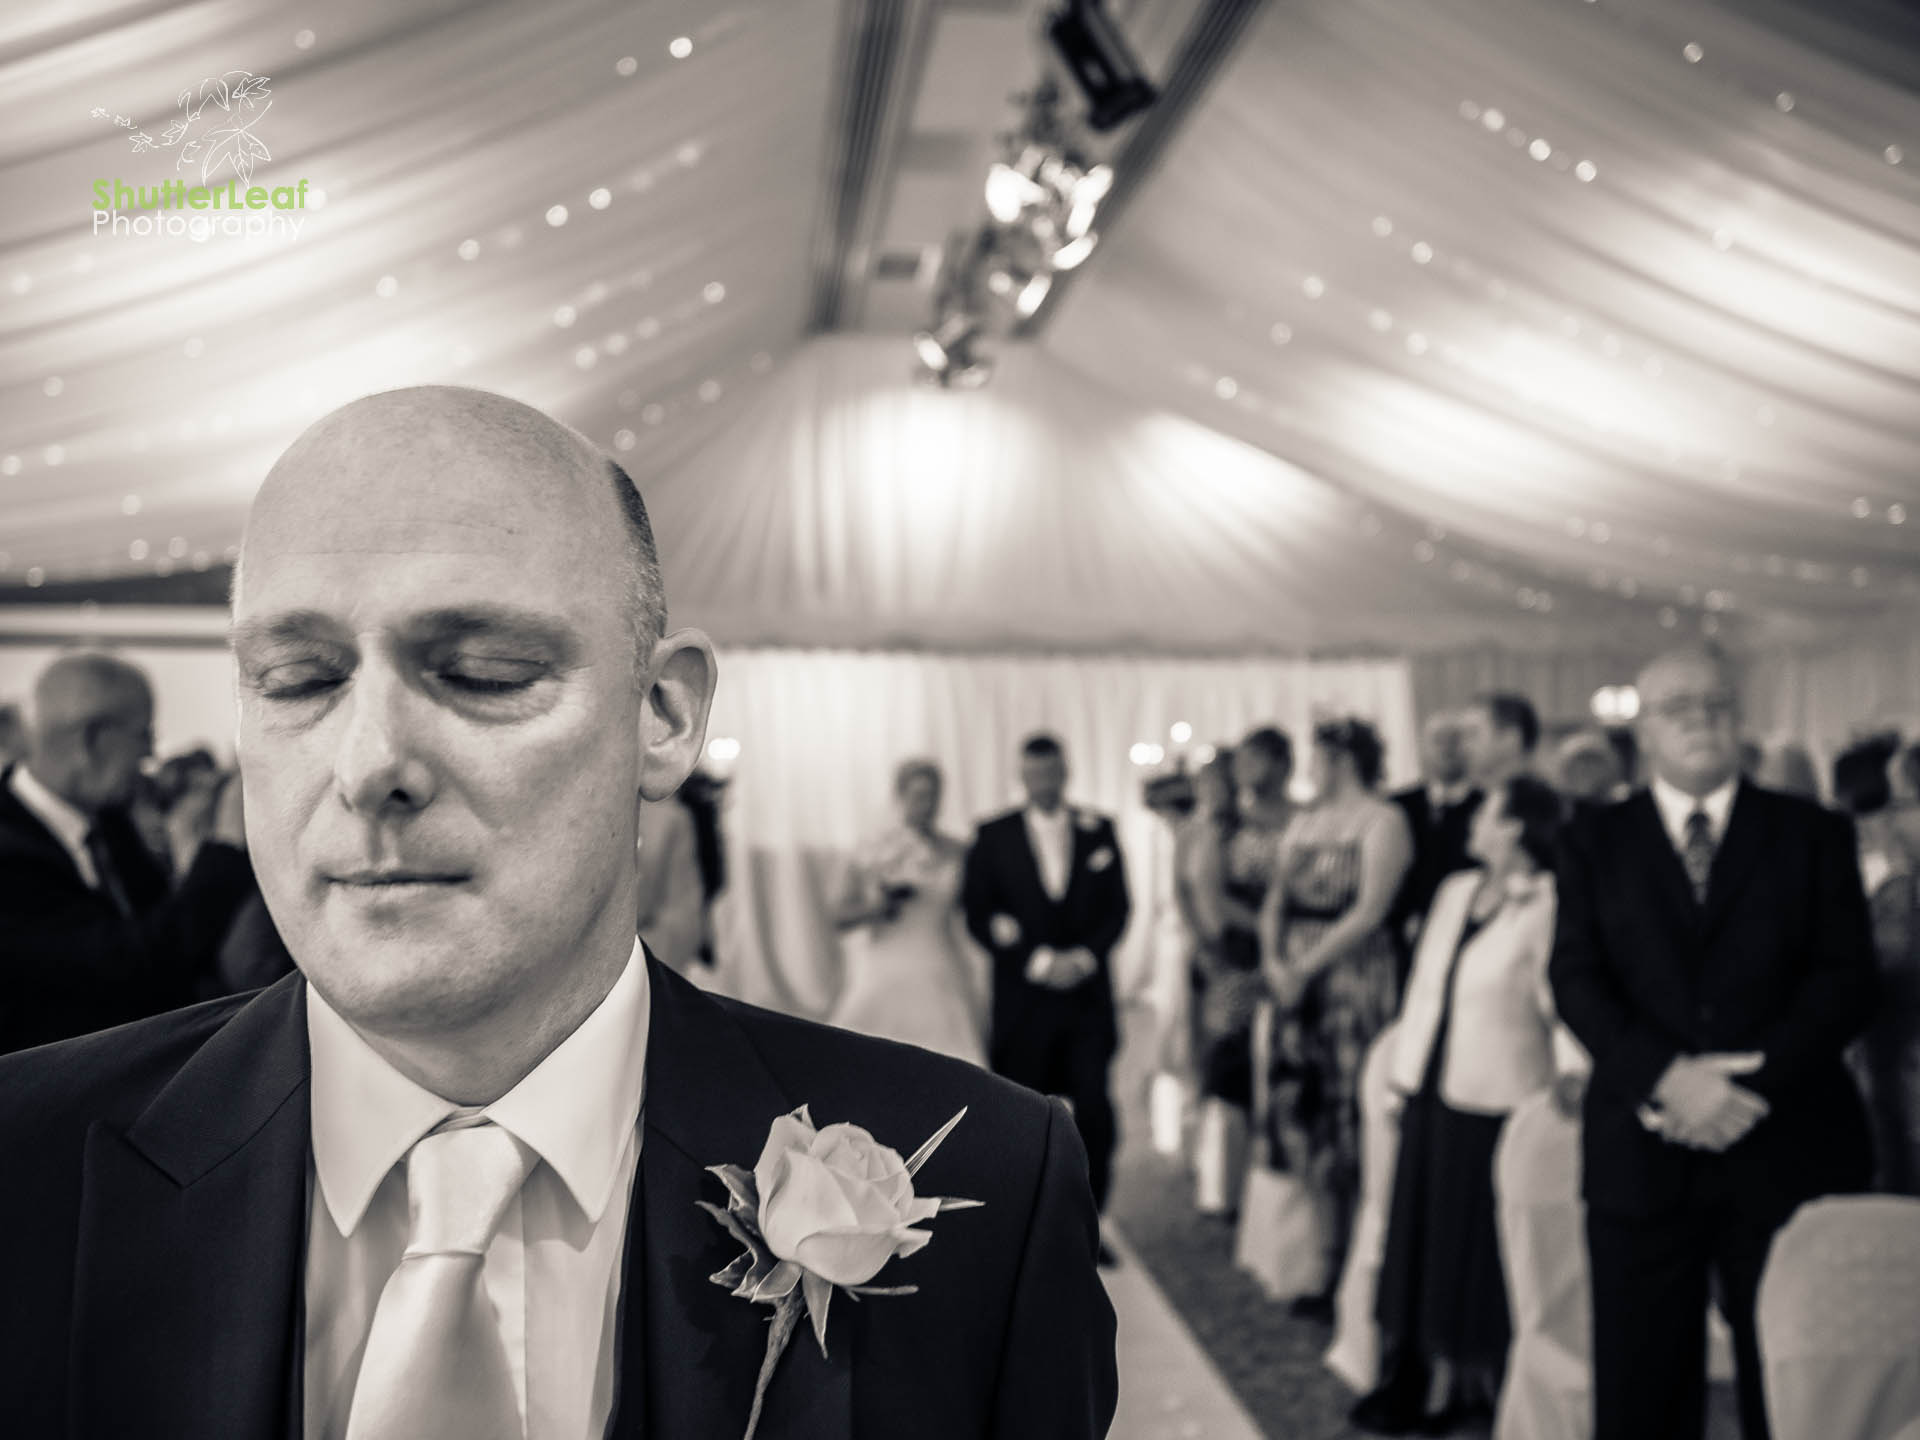 Lancashire Wedding Photographer - EM5 - distance to subject - Blog - shutterleaf.co.uk 0003